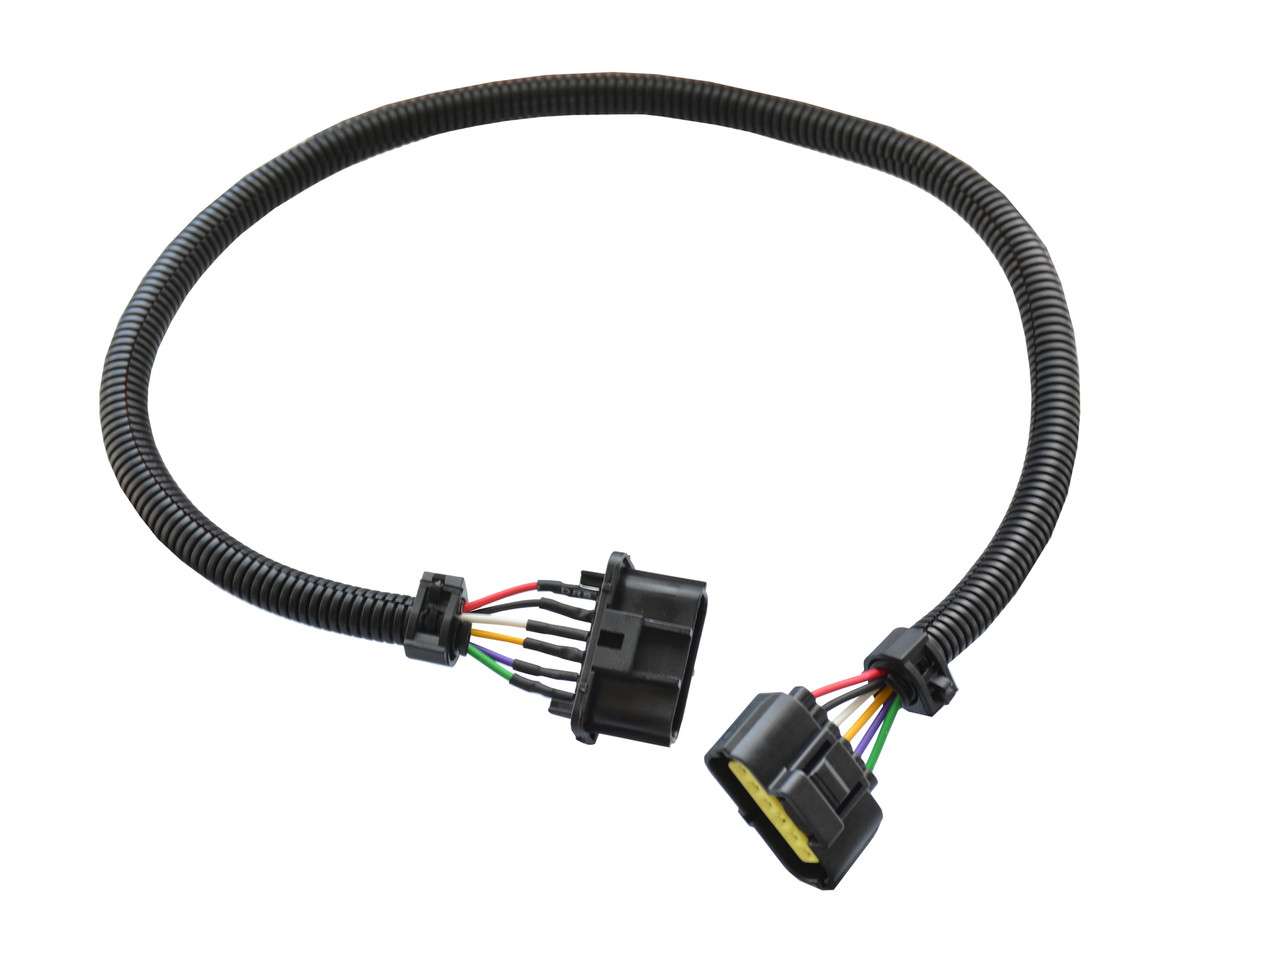 medium resolution of mass air flow maf 24 extension harness sensor connector 6 wire pin fits ford